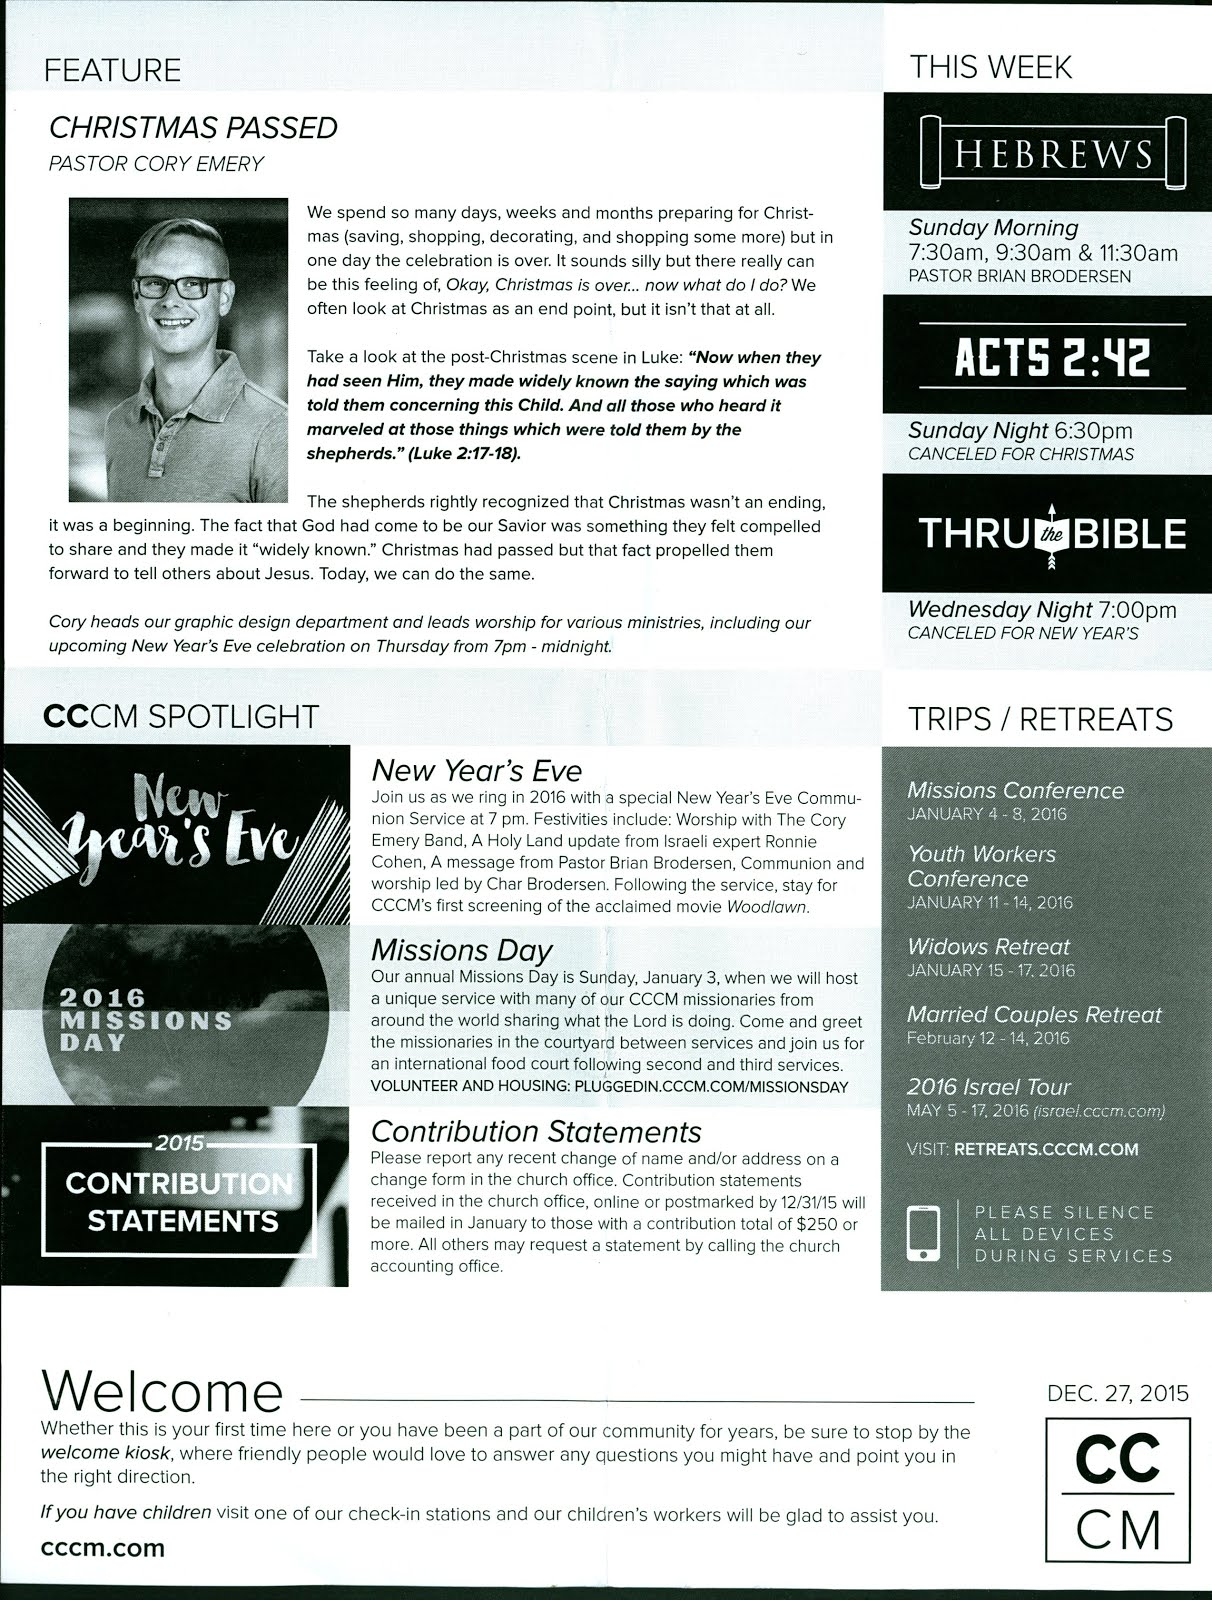 my church bulletins be the world s largest online diverse why are calvary chapel costa mesa s bulletins so plain even for christmas they can t put a little more into their bulletins